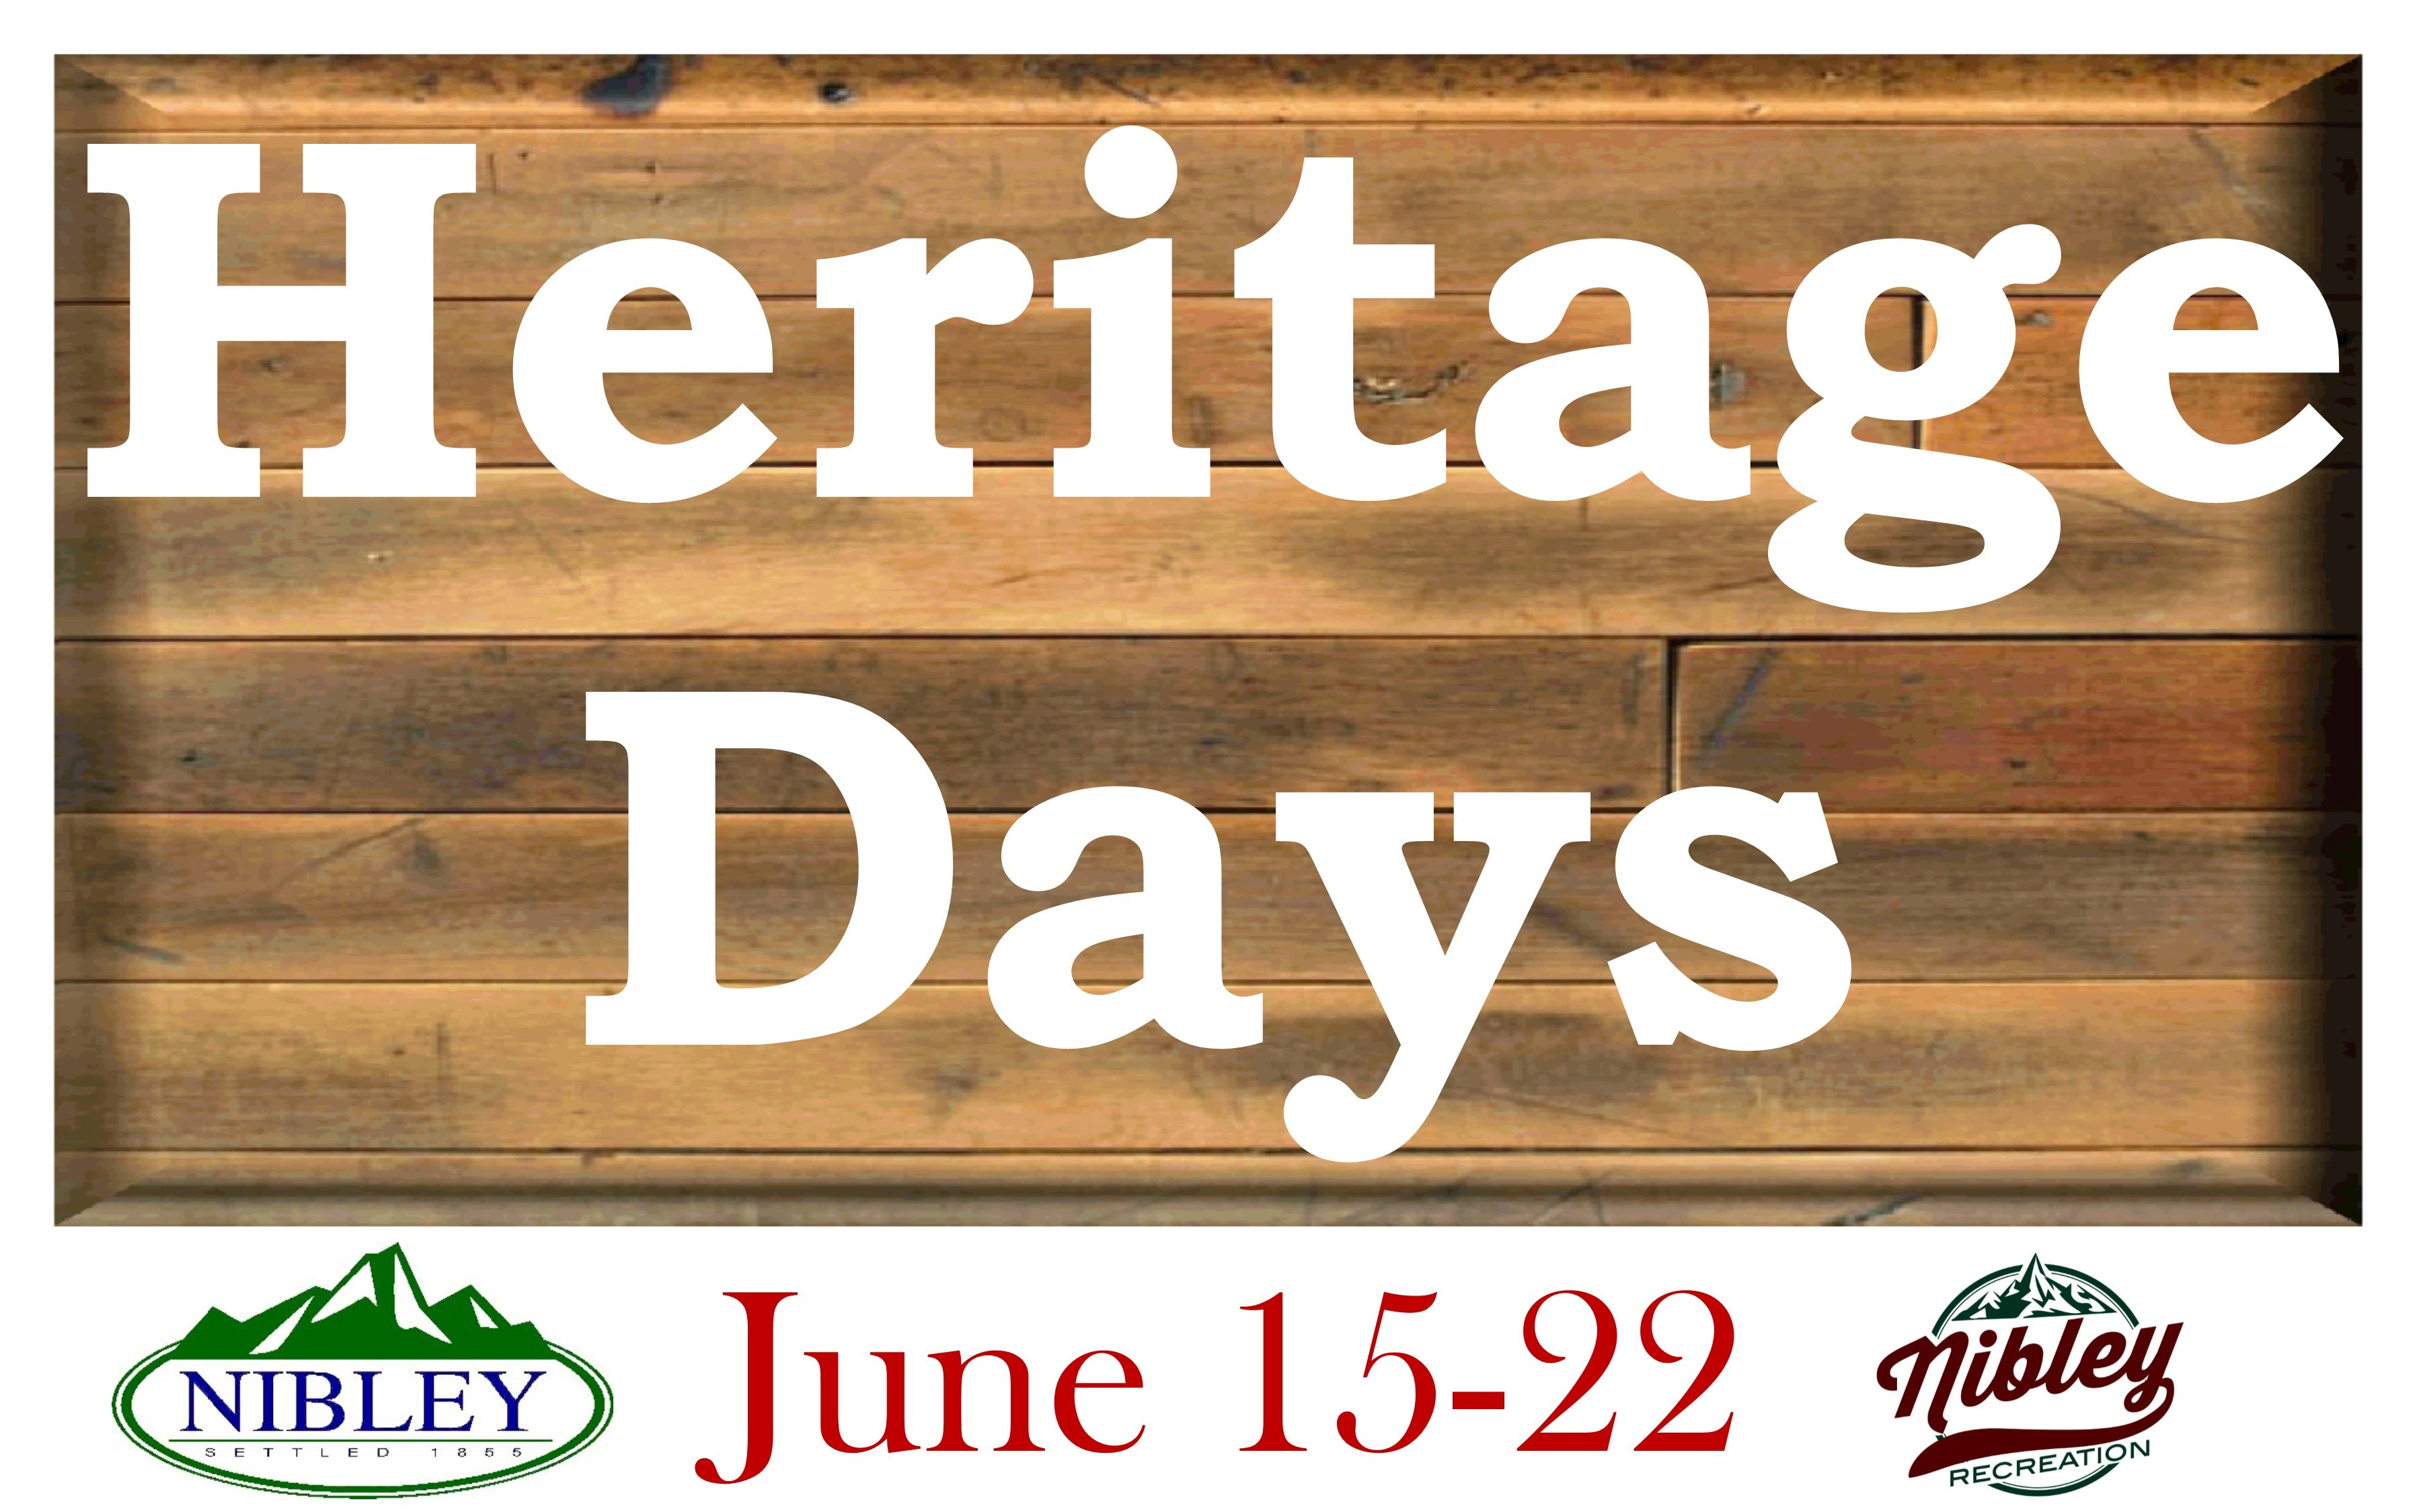 Heritage Days Save the Date 2019